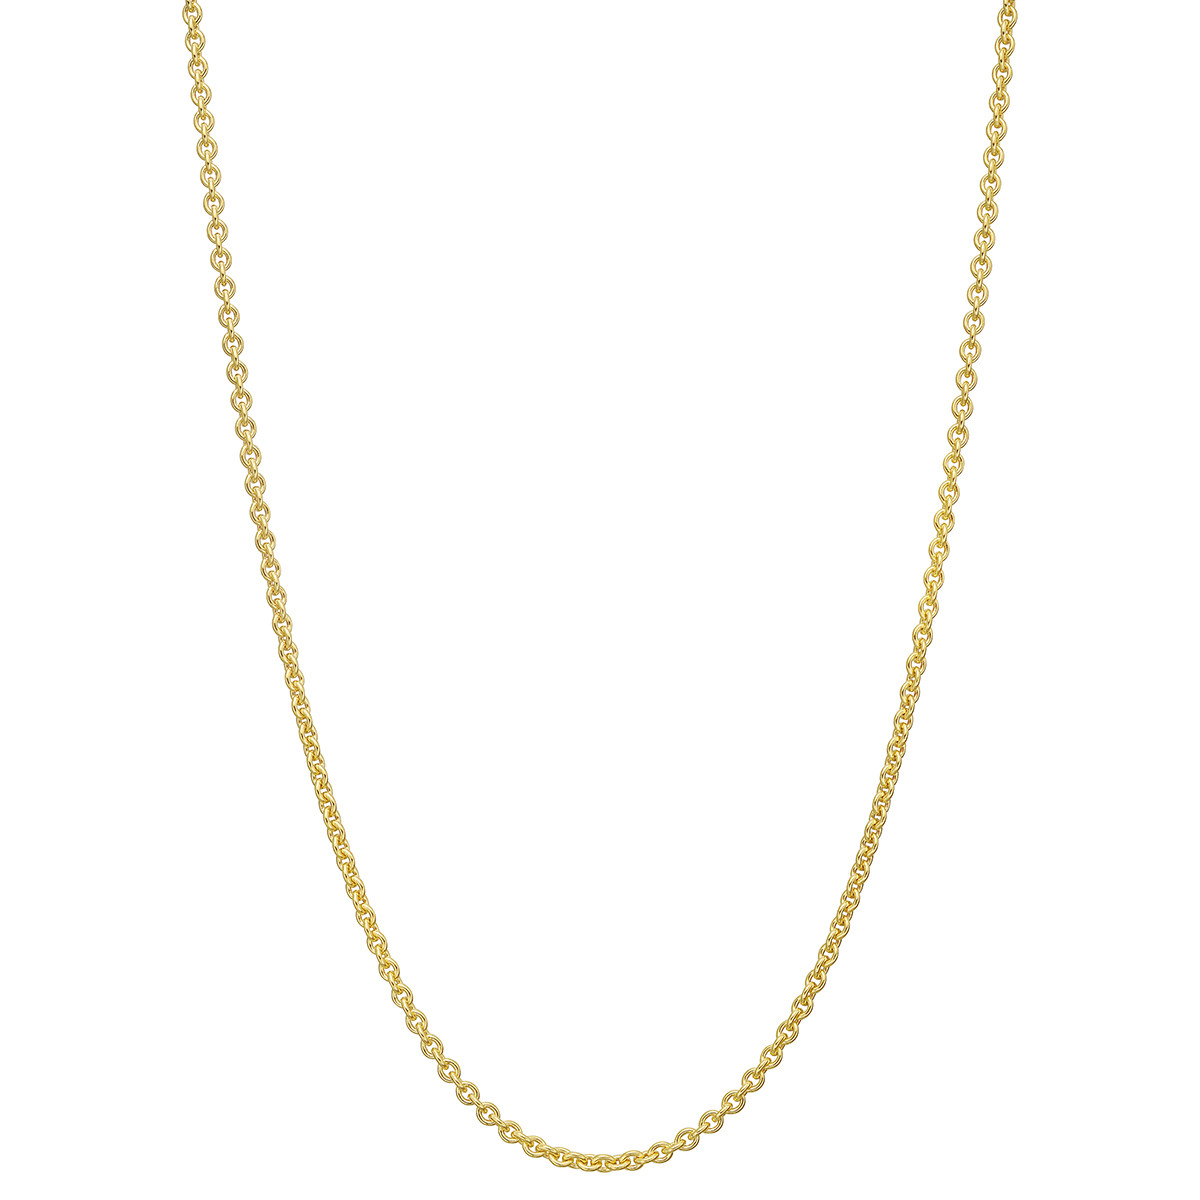 "18k Yellow Gold Round Link Chain Necklace (16"")"